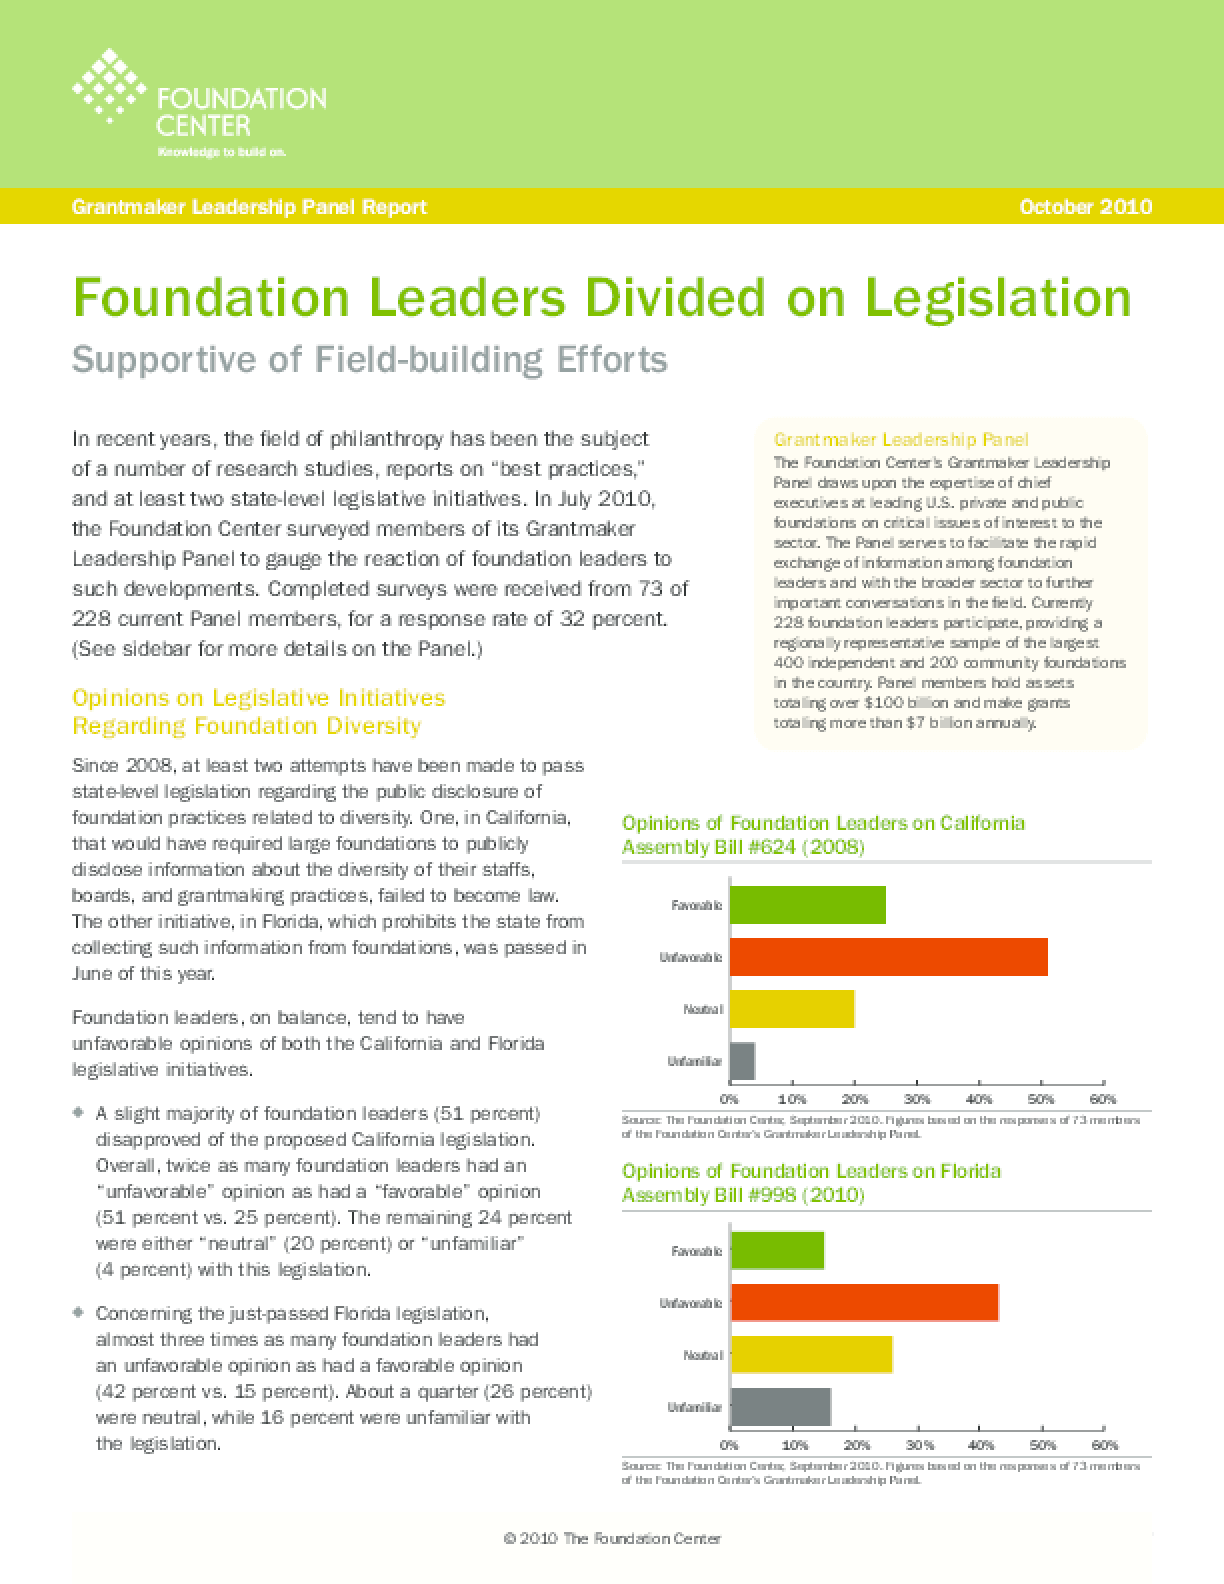 Foundation Leaders Divided on Legislation, Survey Finds